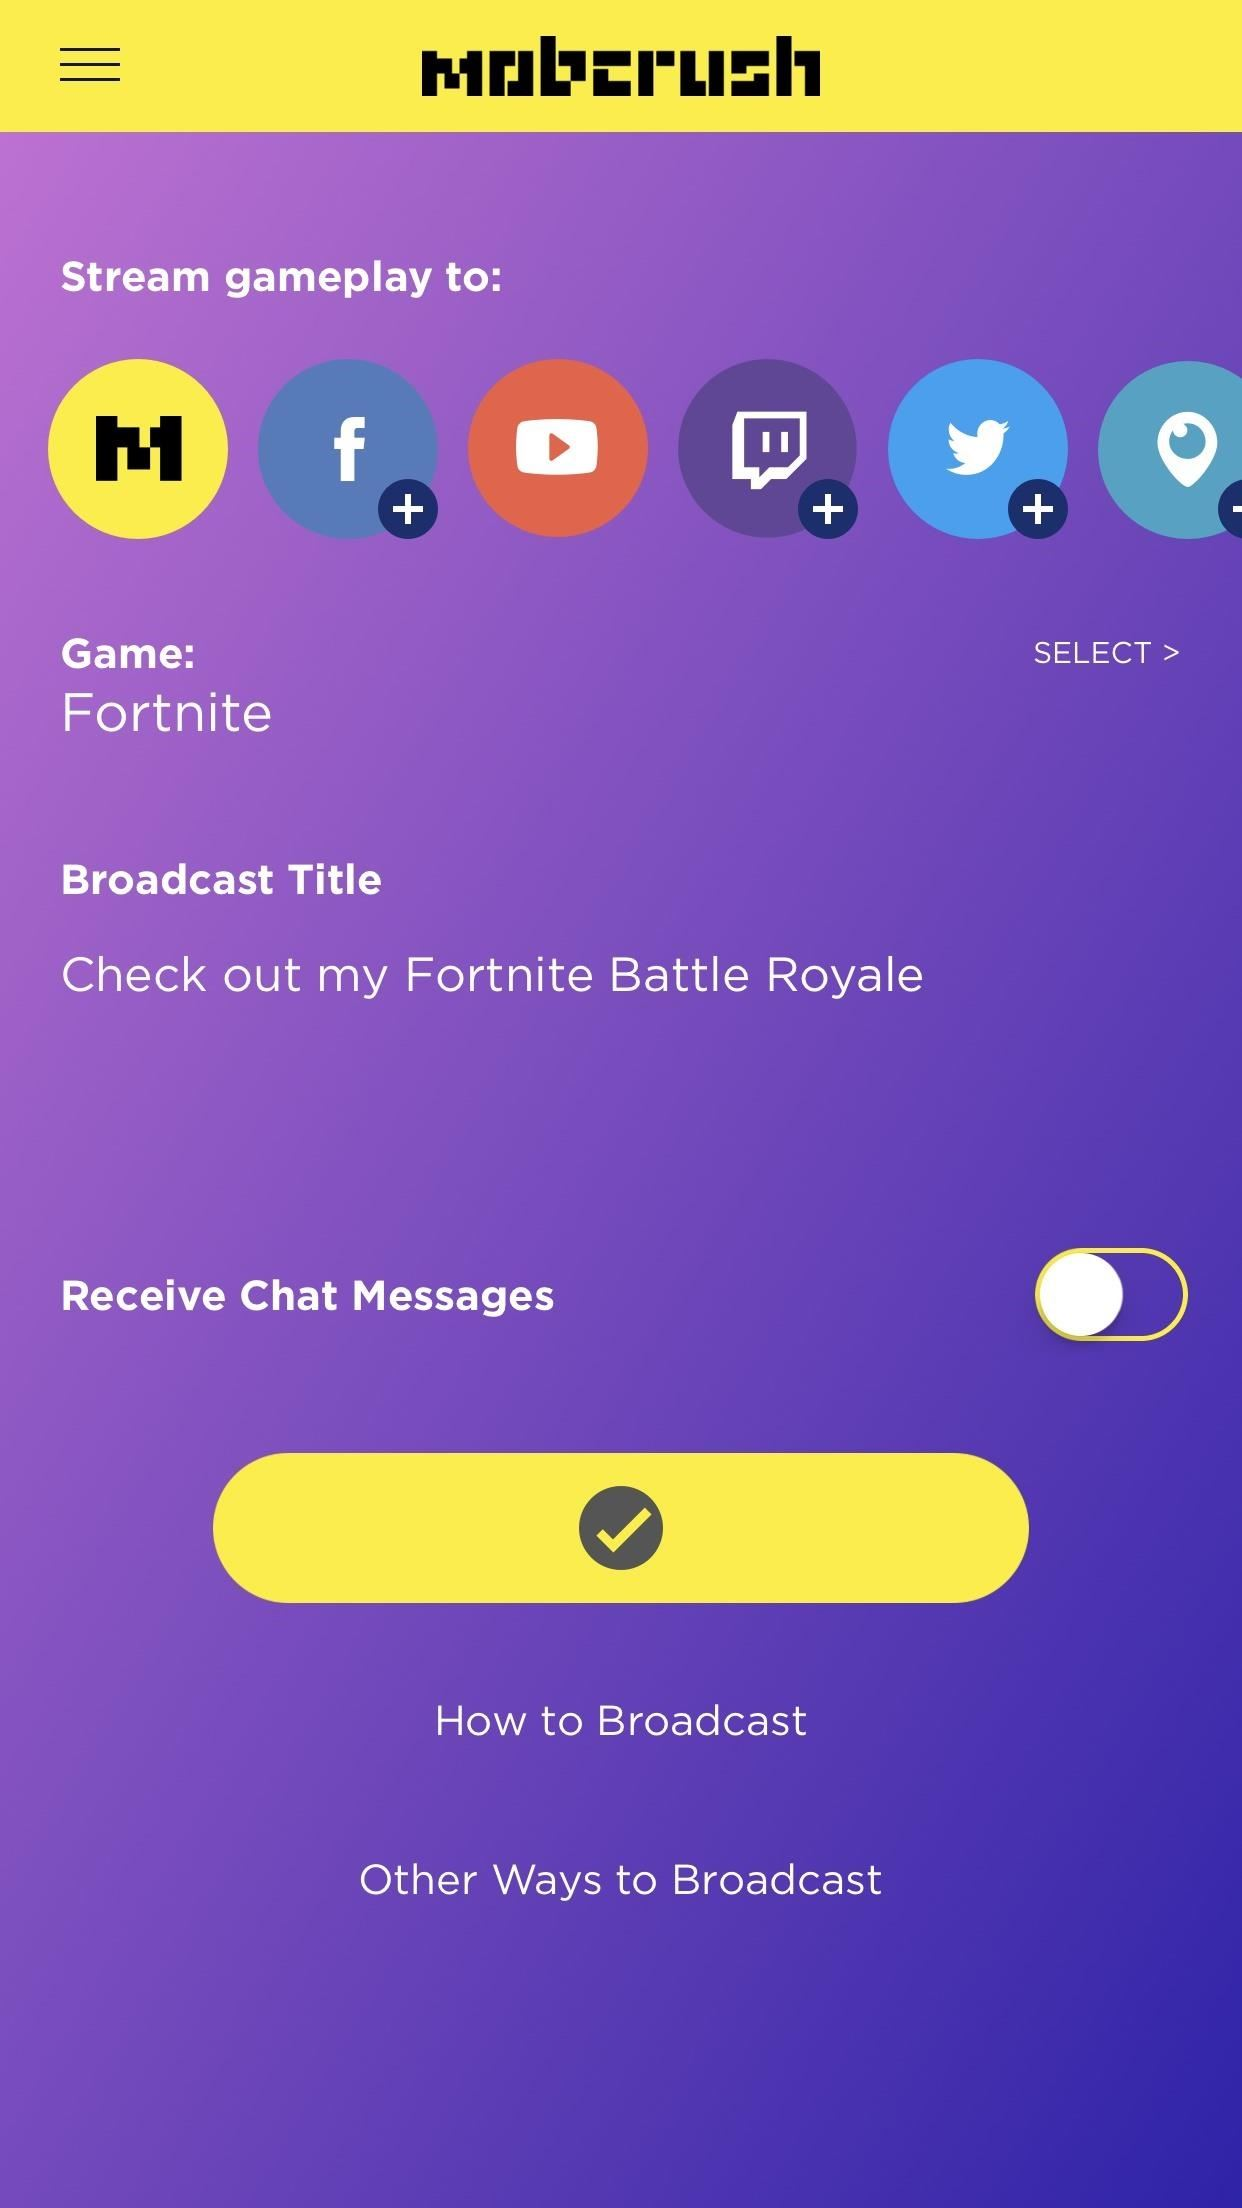 Live Stream Fortnite Battle Royale Gameplay from Your iPhone to